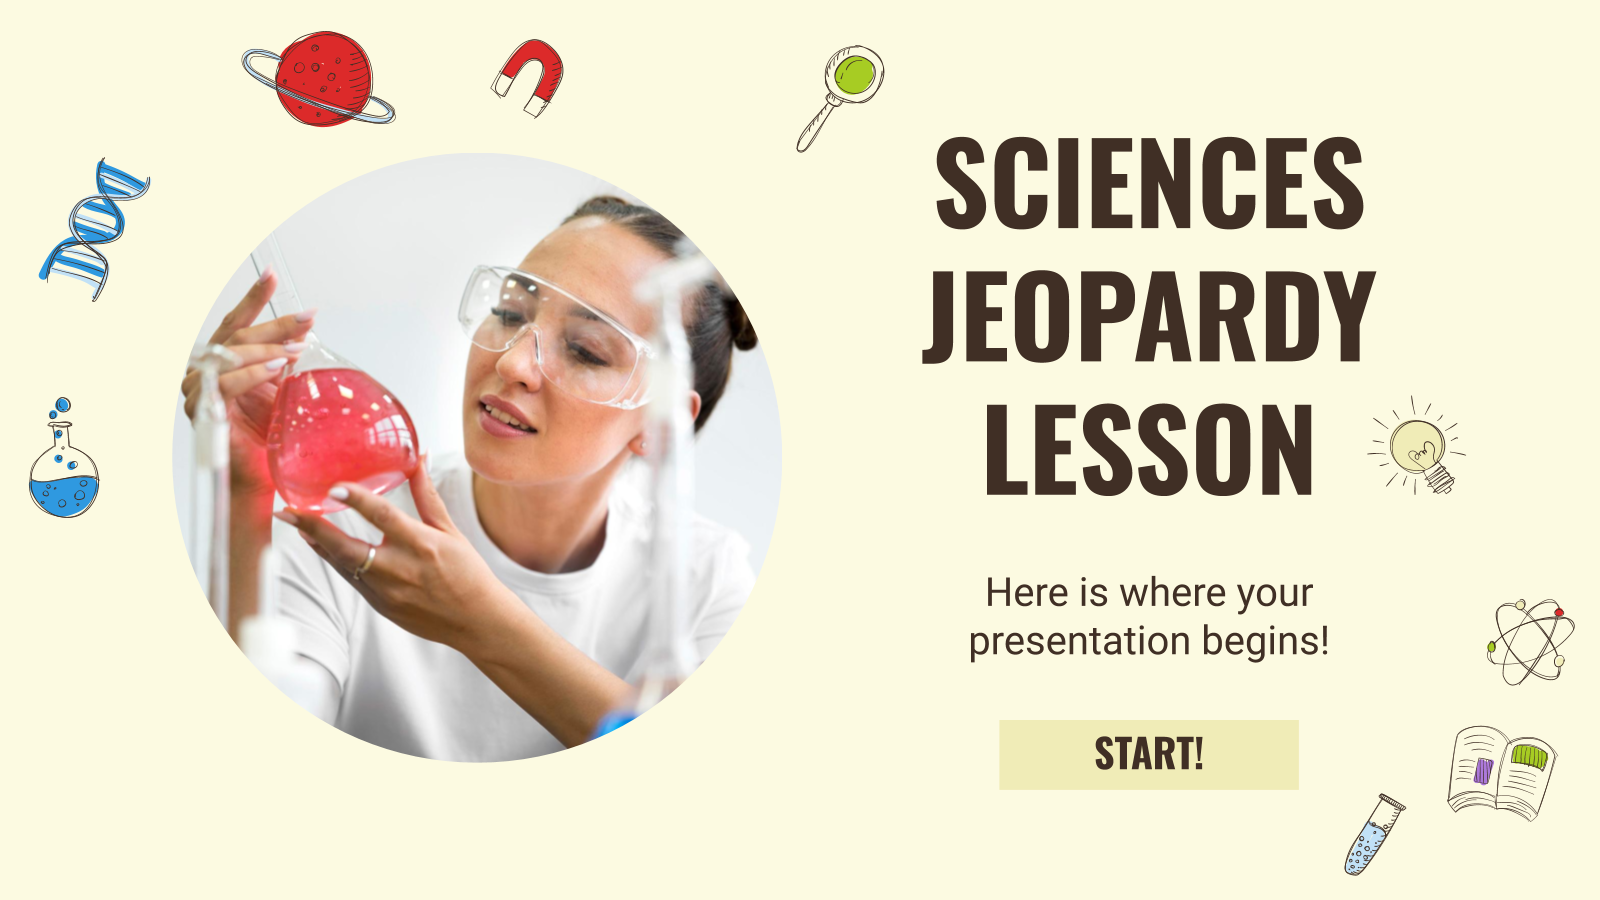 Sciences Jeopardy Lesson presentation template